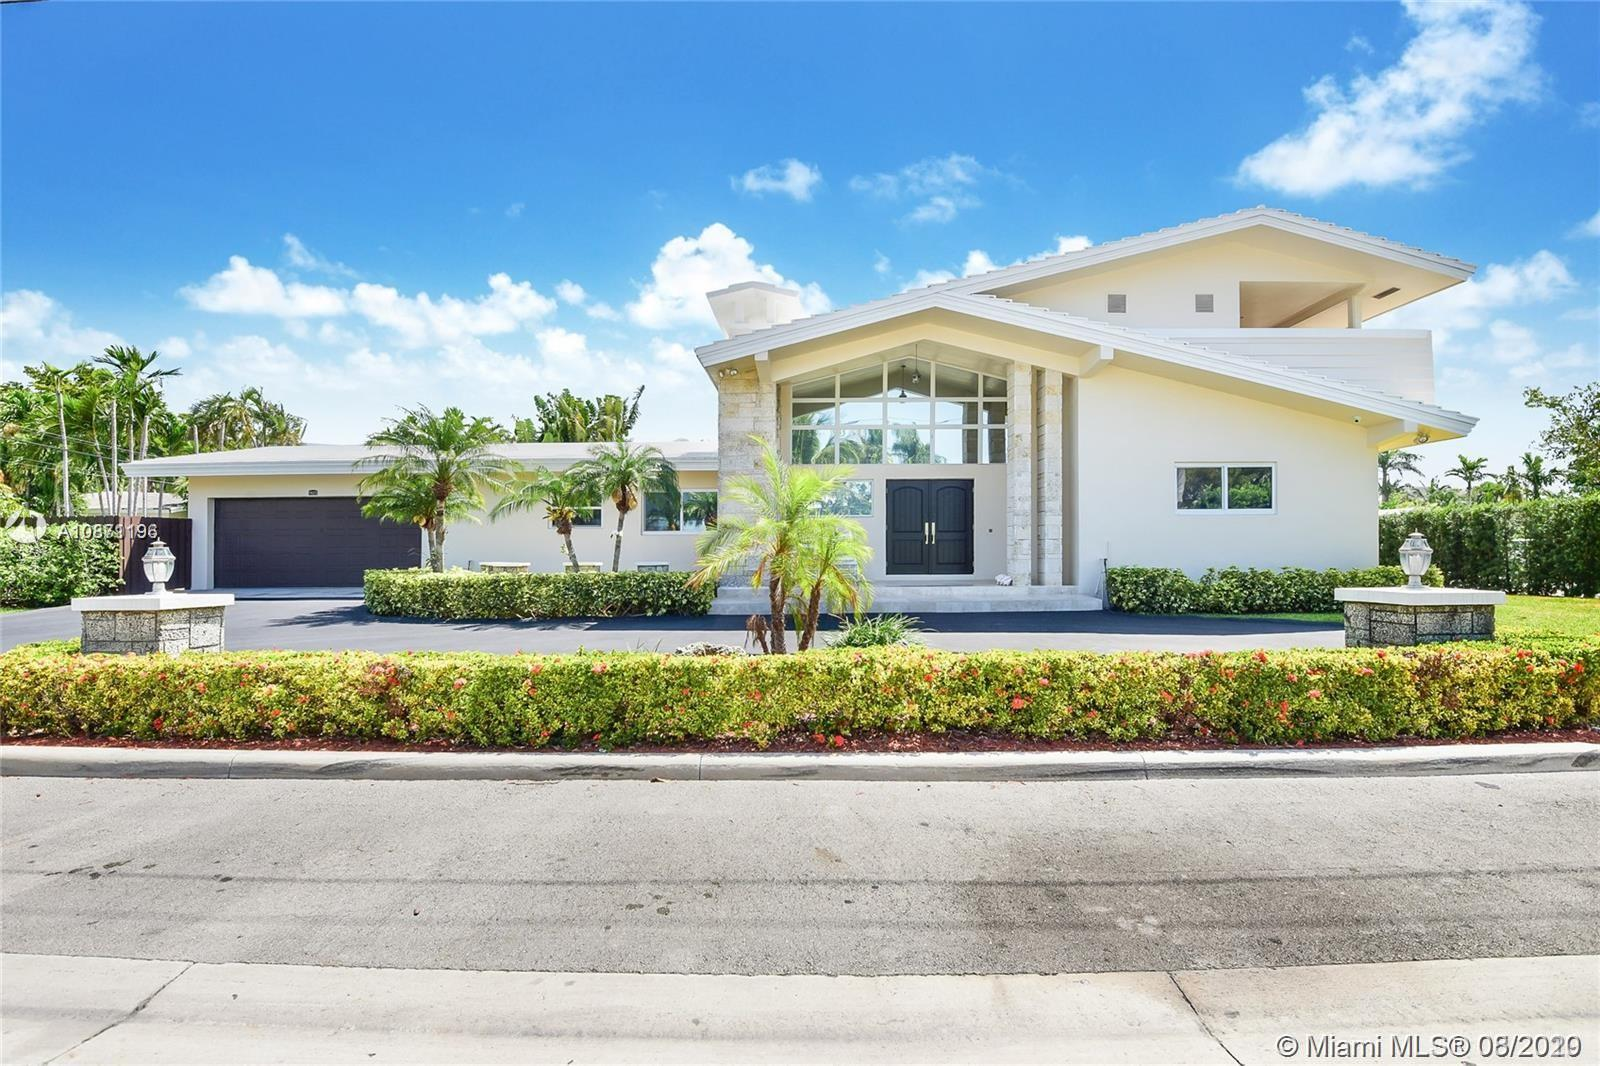 Bay Harbor Islands upgraded family home. 4-Bedroom / 4-Bathroom + 1/1 Maids quarters & Large 2-Car Garage. New porcelain floors, New Impact Windows & Doors along with plantation shutters throughout entire home. Huge eat-in kitchen, Large second floor master suite with balcony, open floor plan with cathedral ceilings, high-end security system, Smart Home, NEW (2) zone A/C, New exterior stucco and paint, relaxing Koi pond, Corner Lot with over-sized circular driveway, A-rated schools, New 7-person outdoor hot tub, new outdoor shower, enclosed yard with privacy fence, quiet street